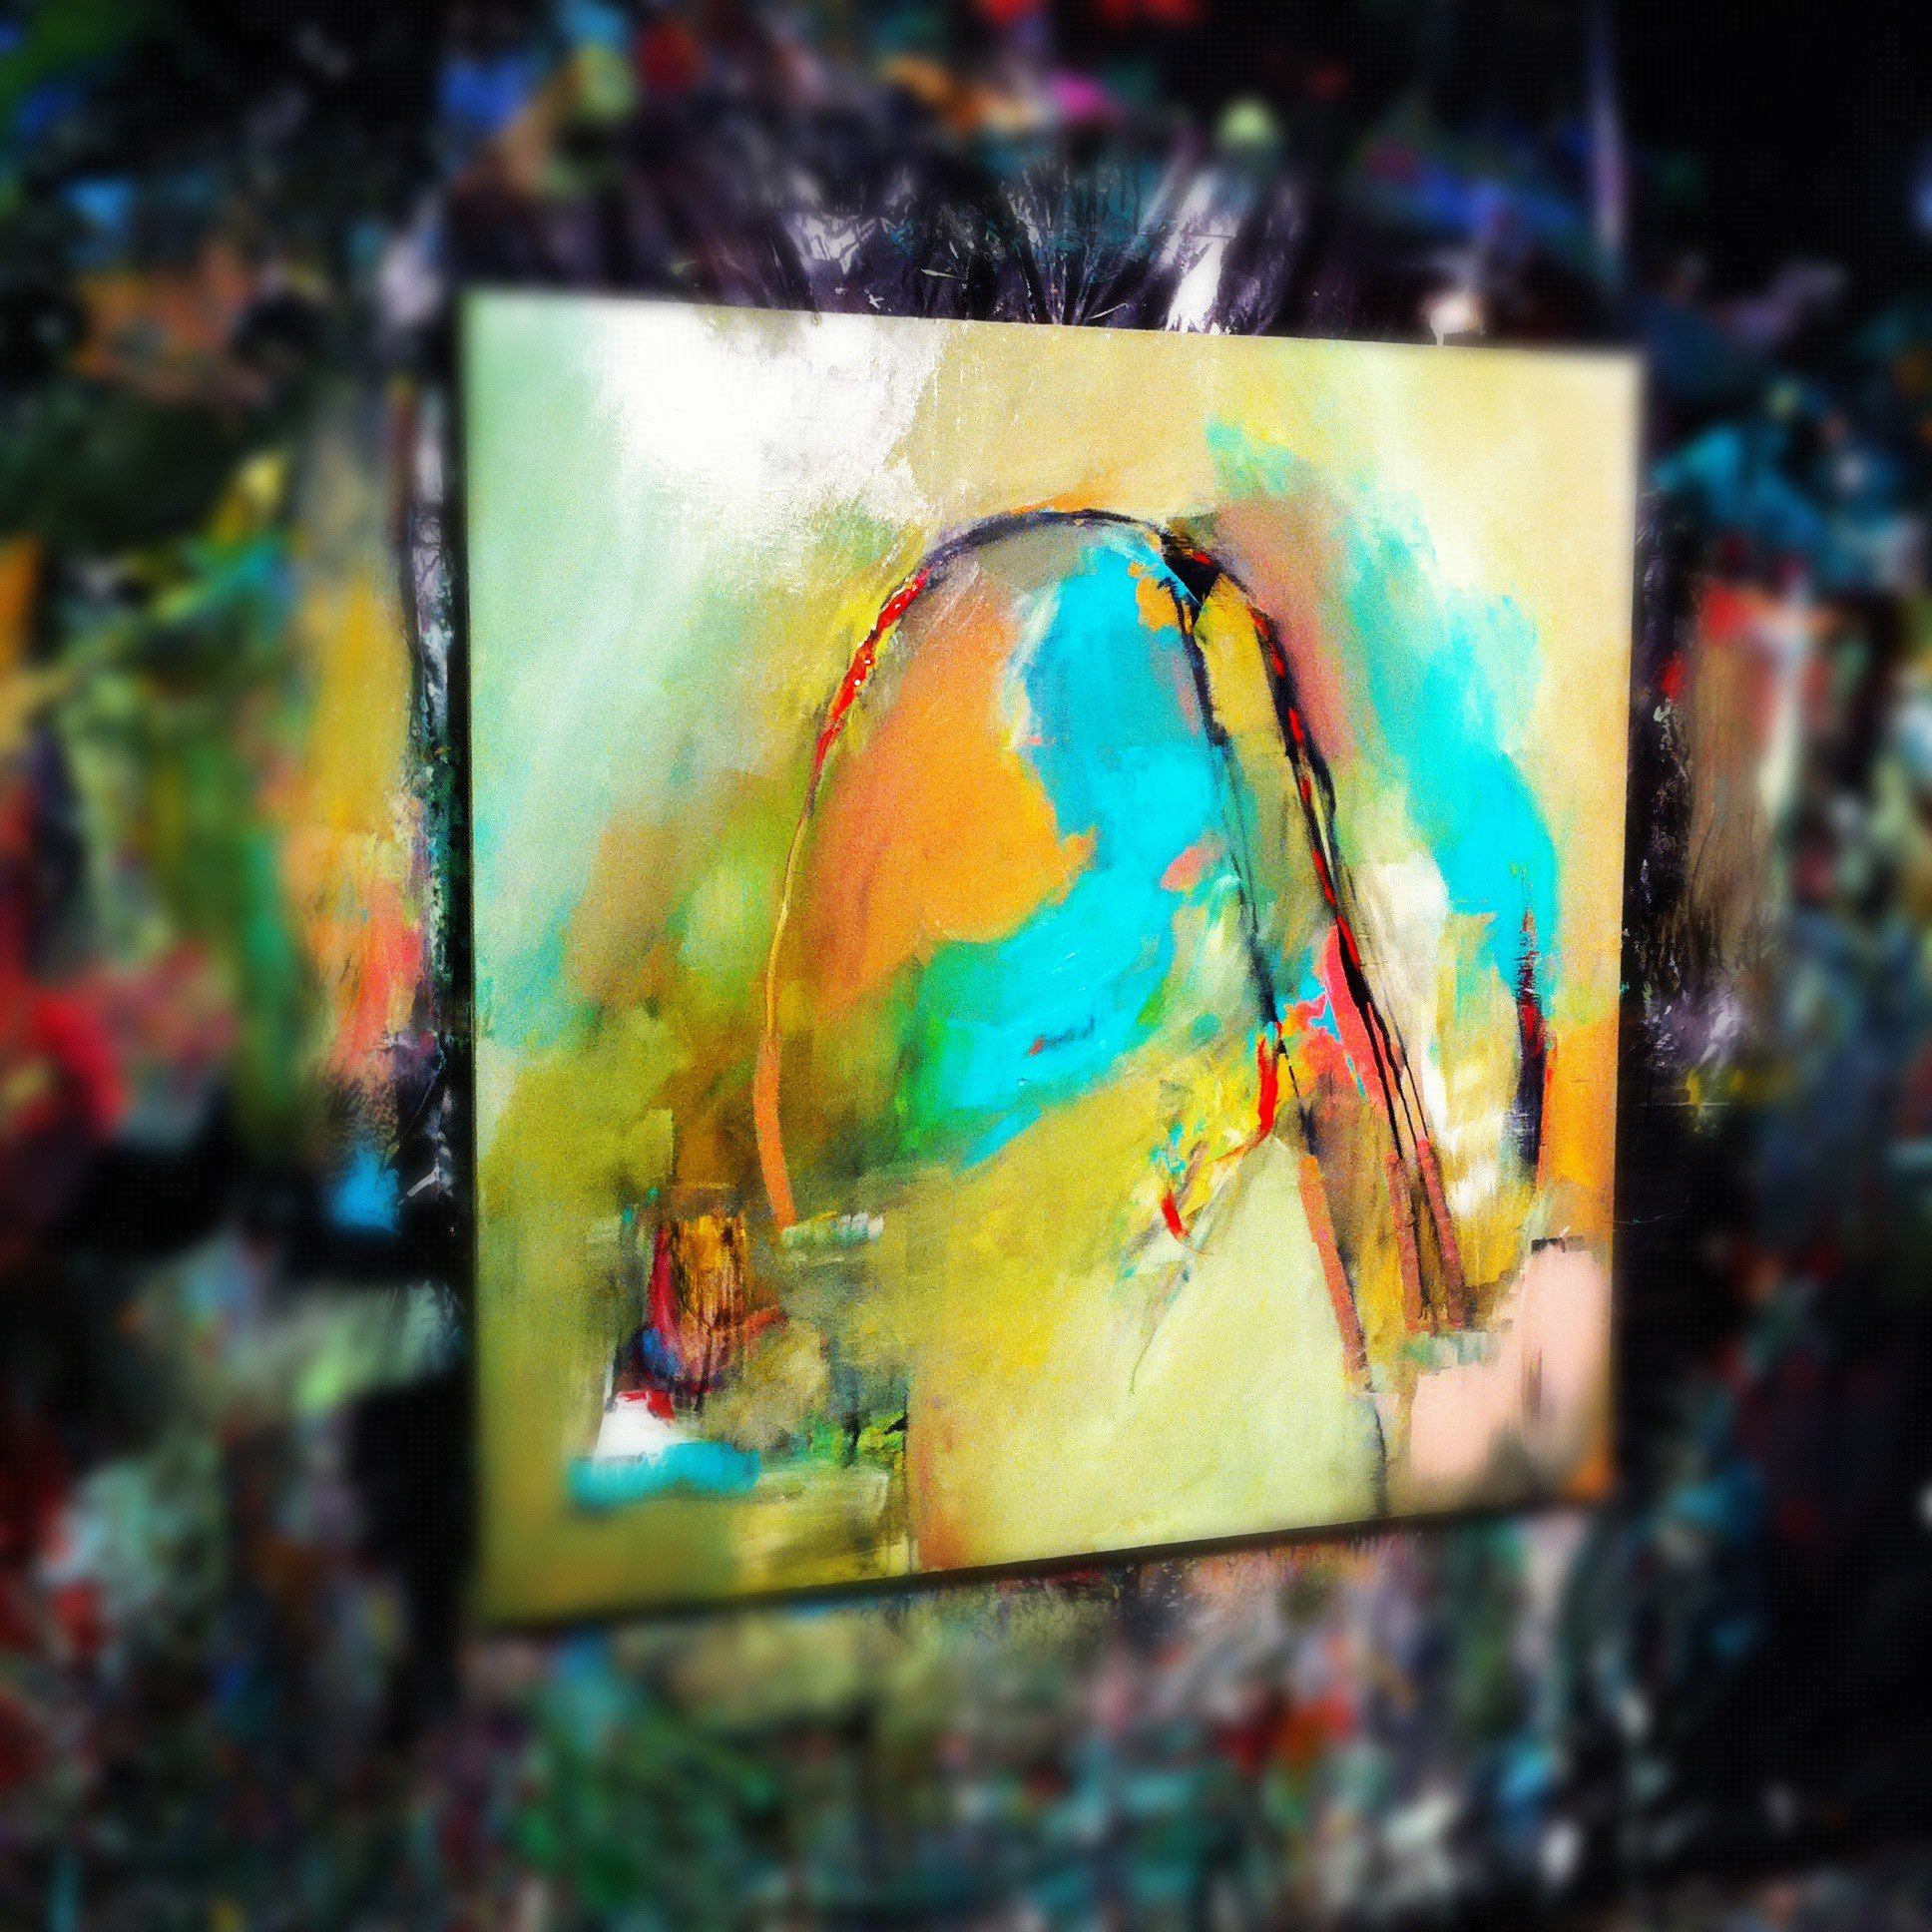 In the studio #BrittanyLeeHoward #art #abstractpainting